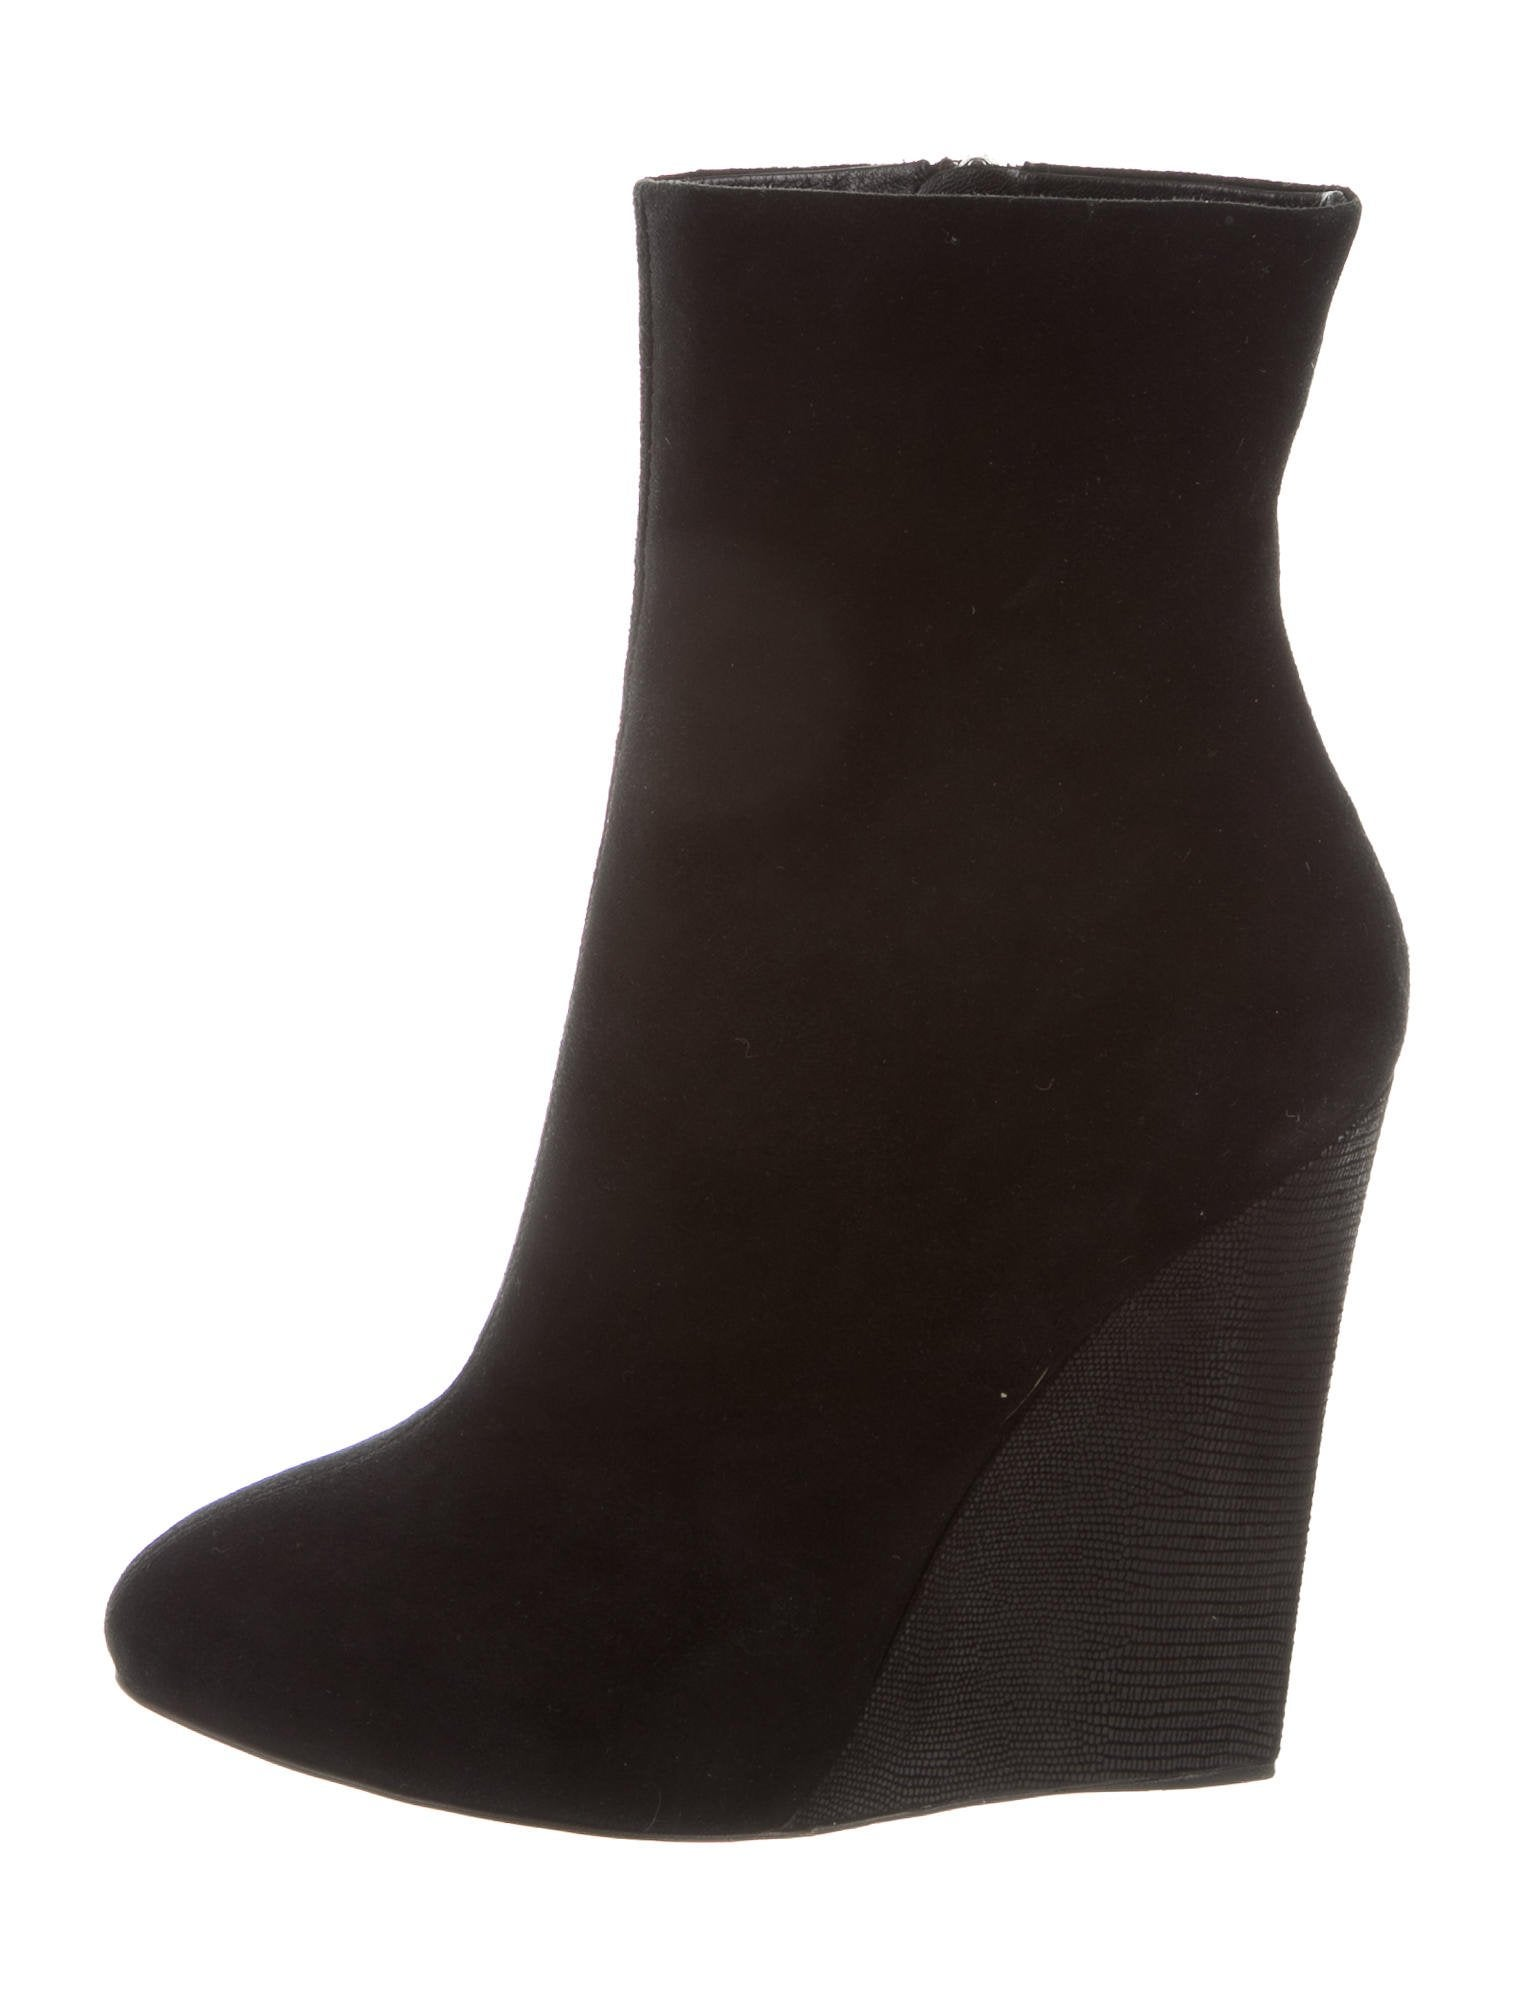 barney s suede wedge ankle boots shoes bar20260 the